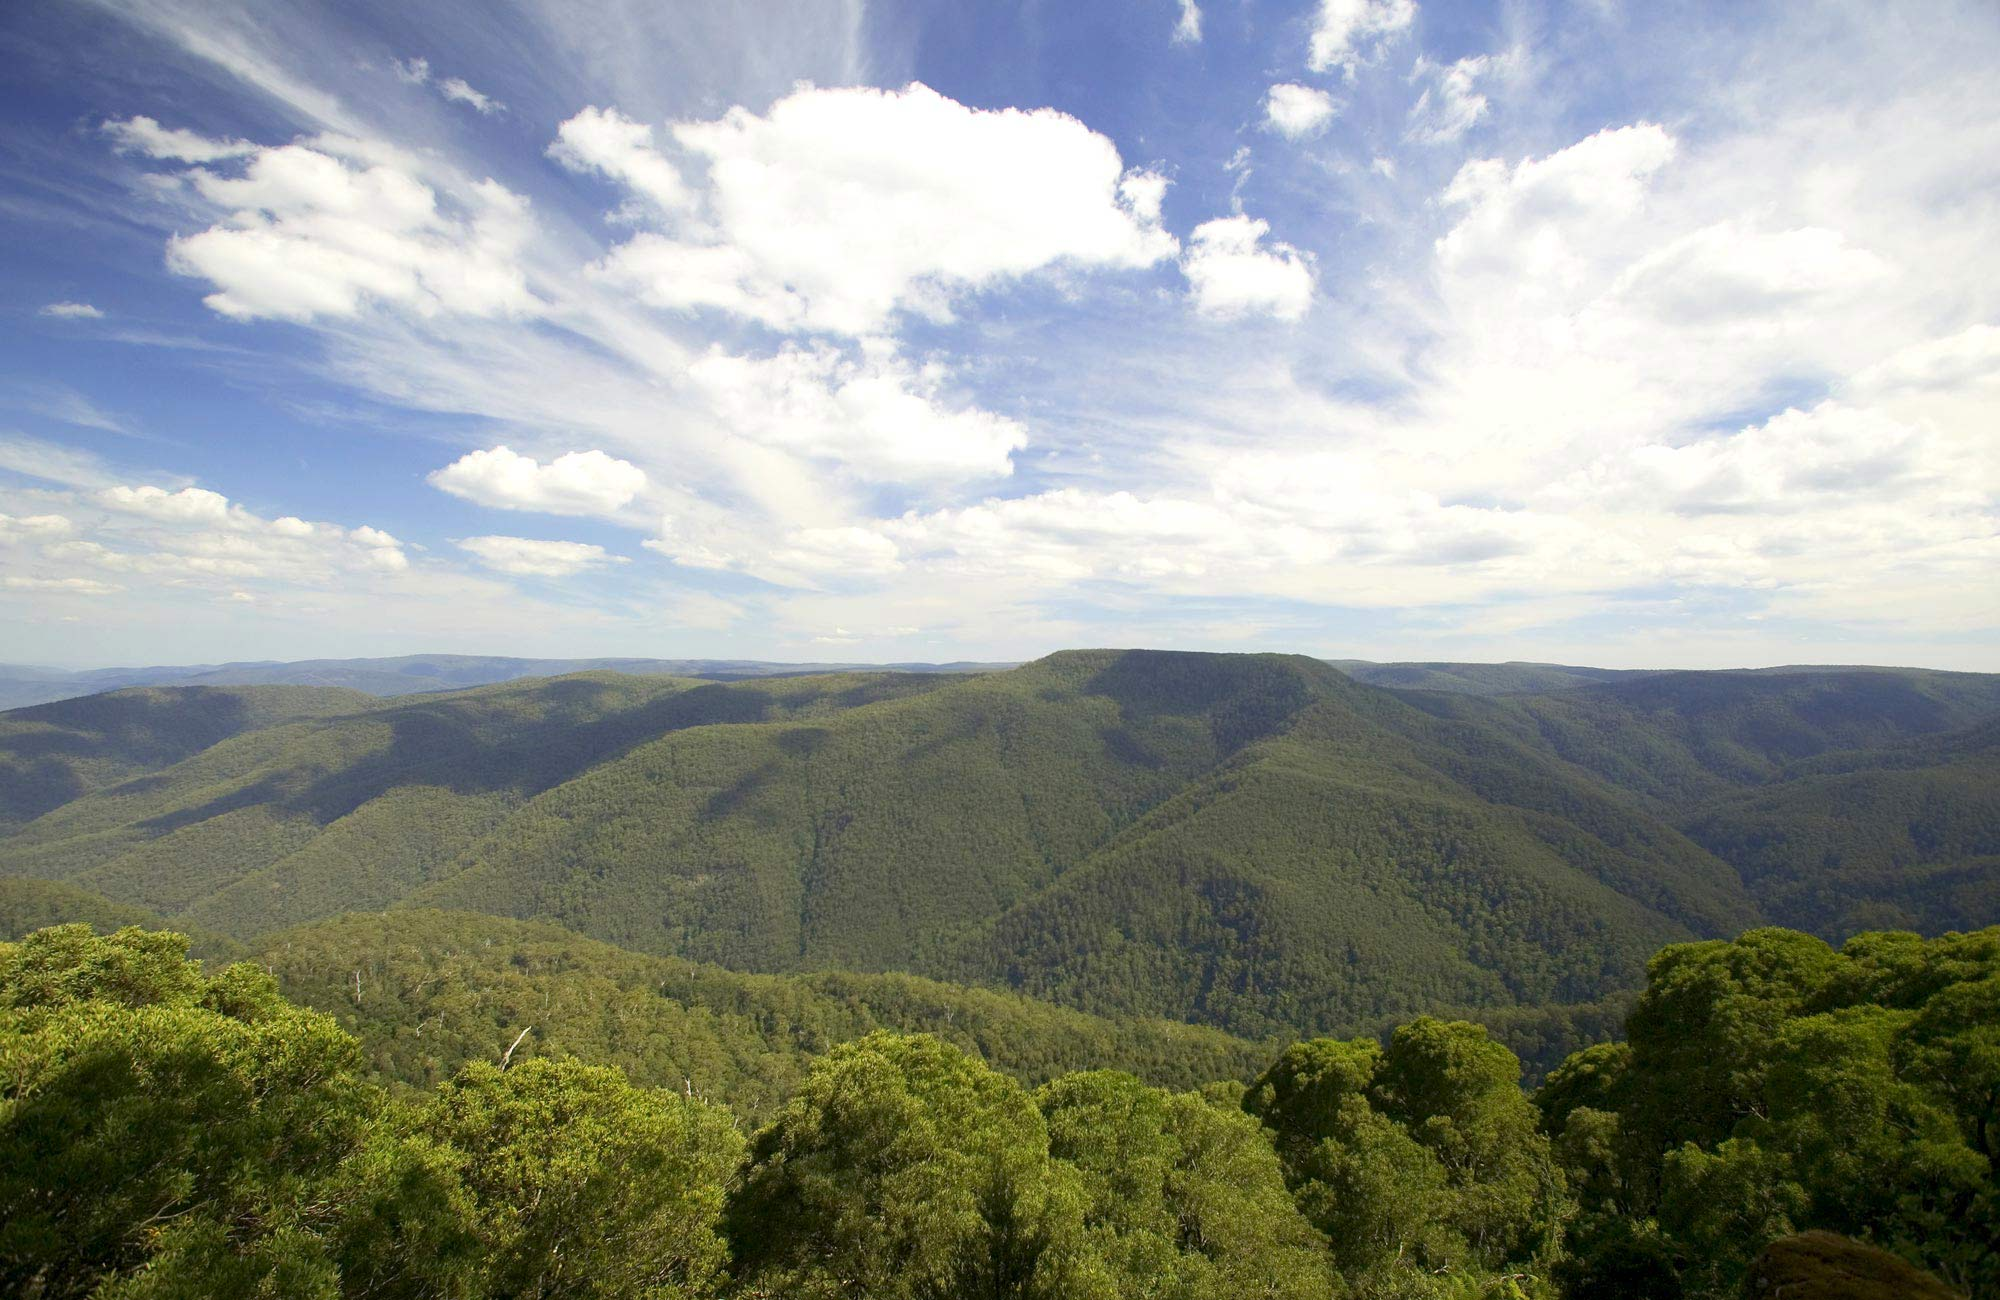 View from Thunderbolt's lookout, Barrington Tops National Park. Photo: Hamilton Lund